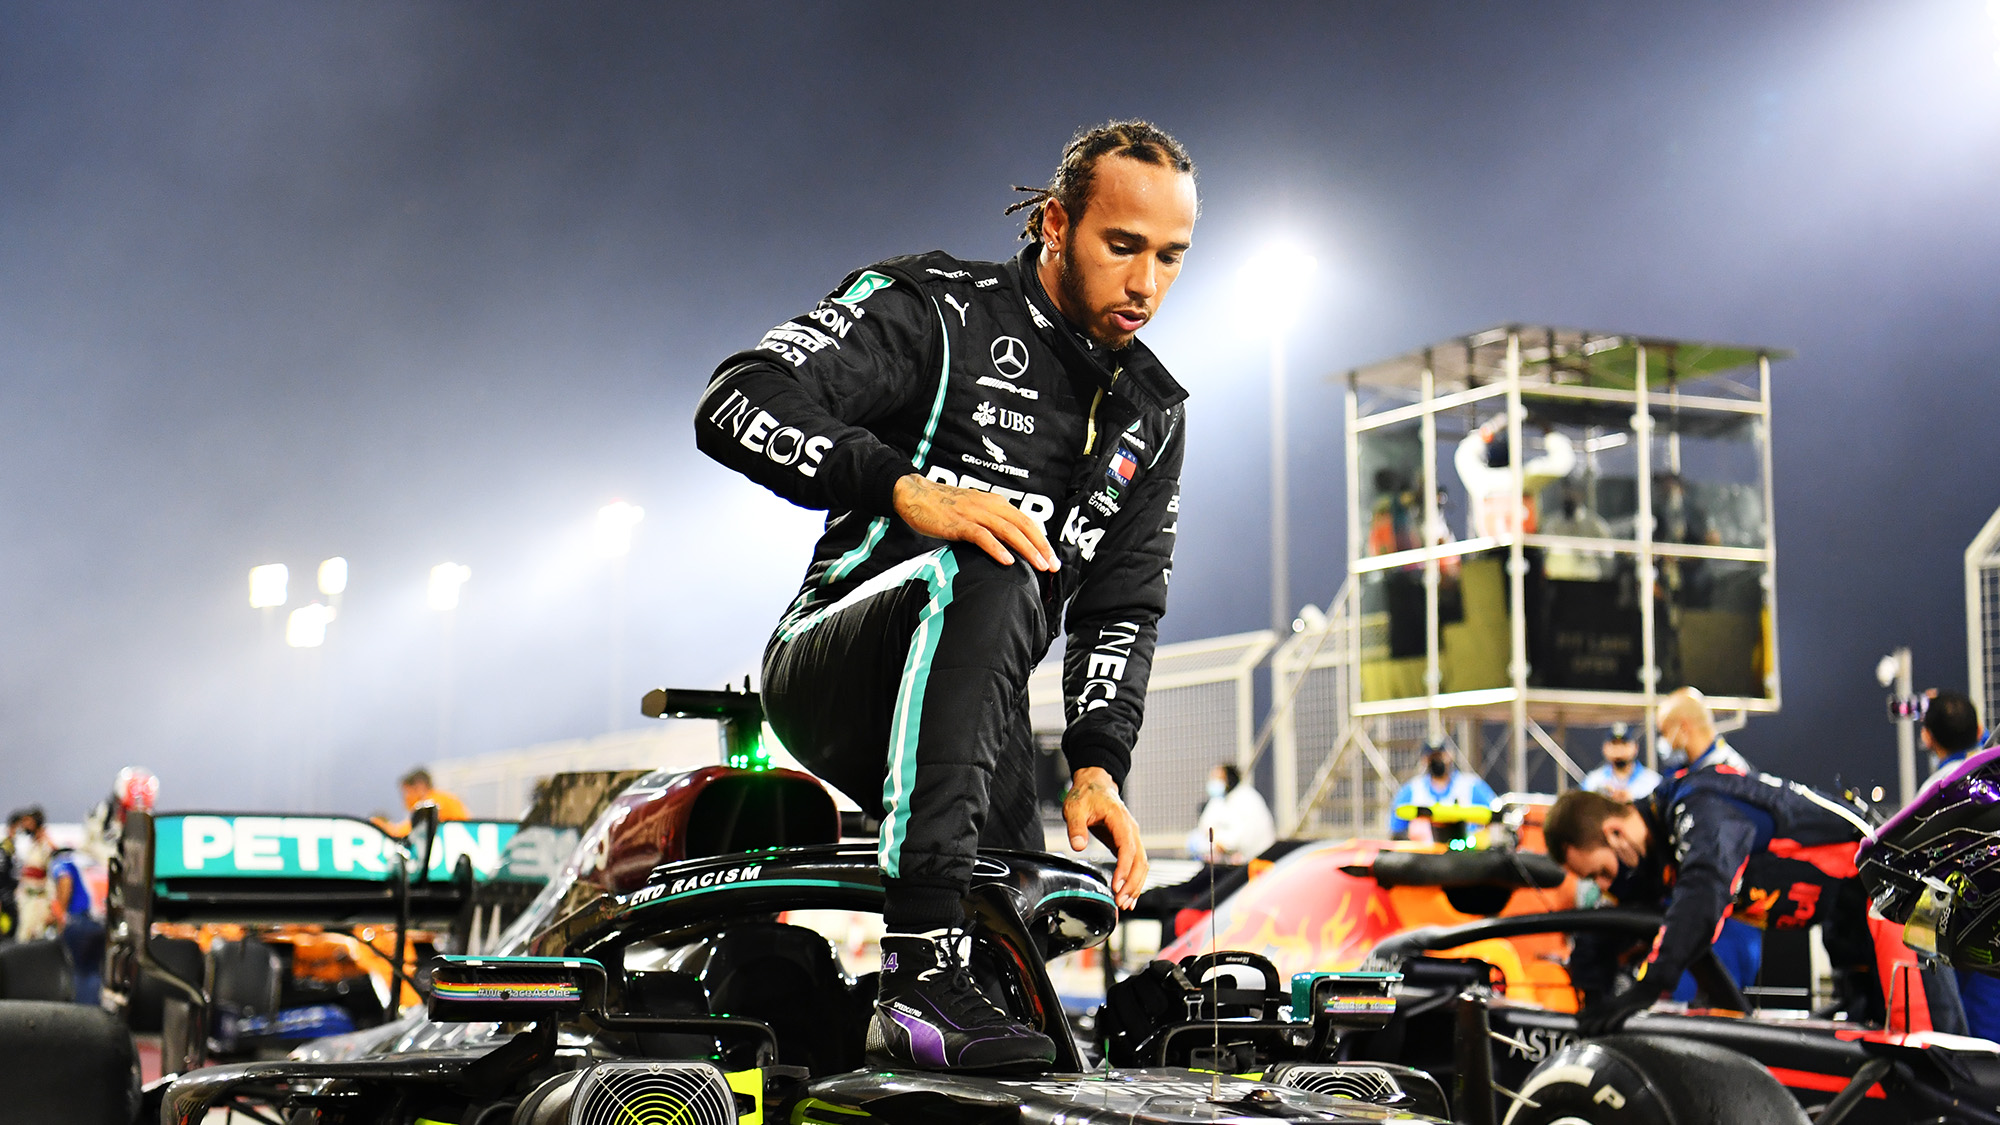 Lewis Hamilton climbs out of his Mercedes at the end of the 2020 Bahrain Grand Prix